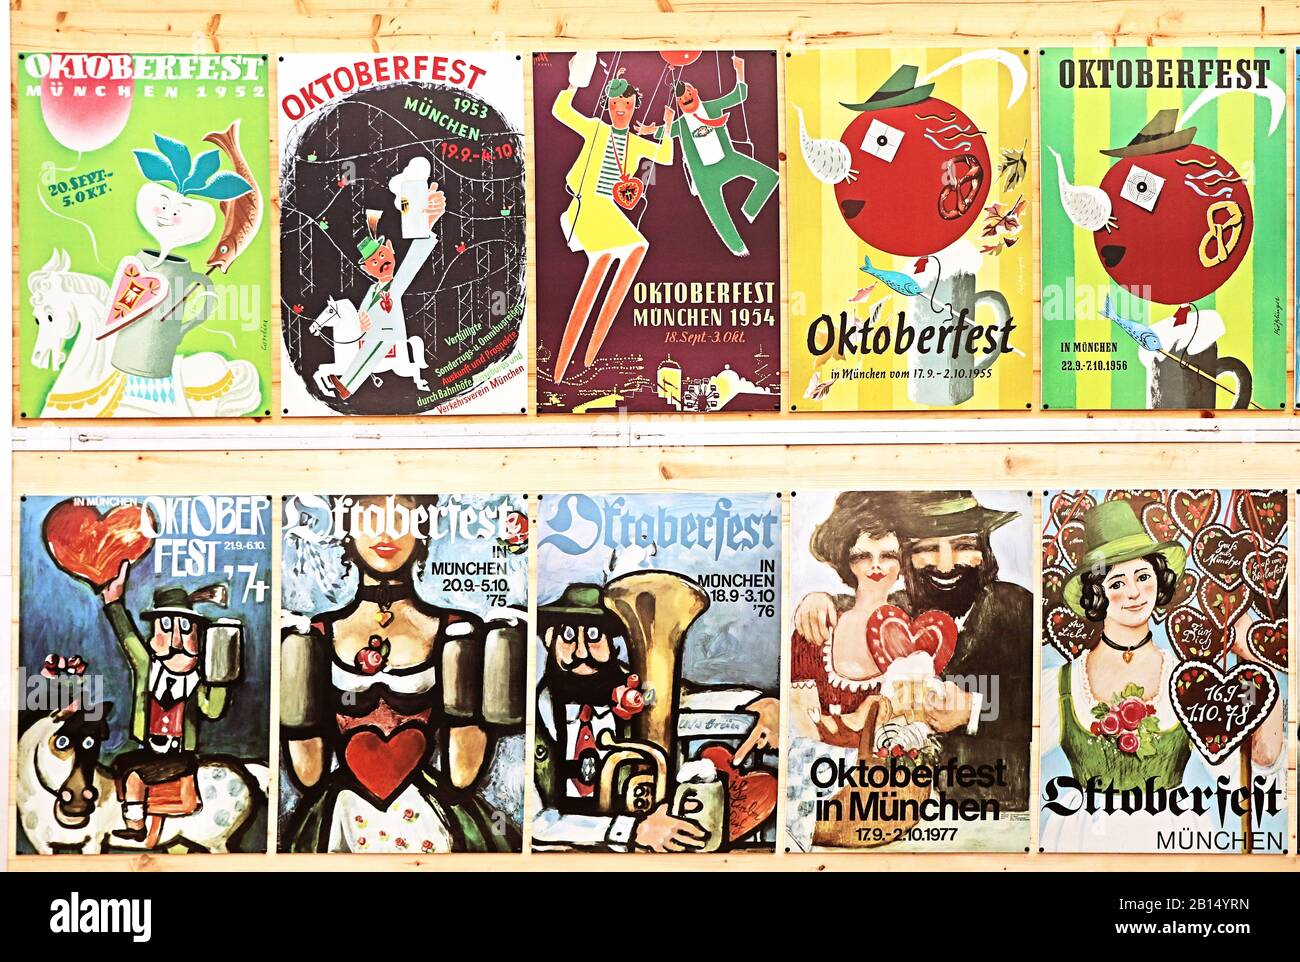 MUNICH, GERMANY - OCTOBER 1, 2019 Vintage Oktoberfest posters on display at Oide Wiesn historical part of the Oktoberfest in Munich, family and child- Stock Photo